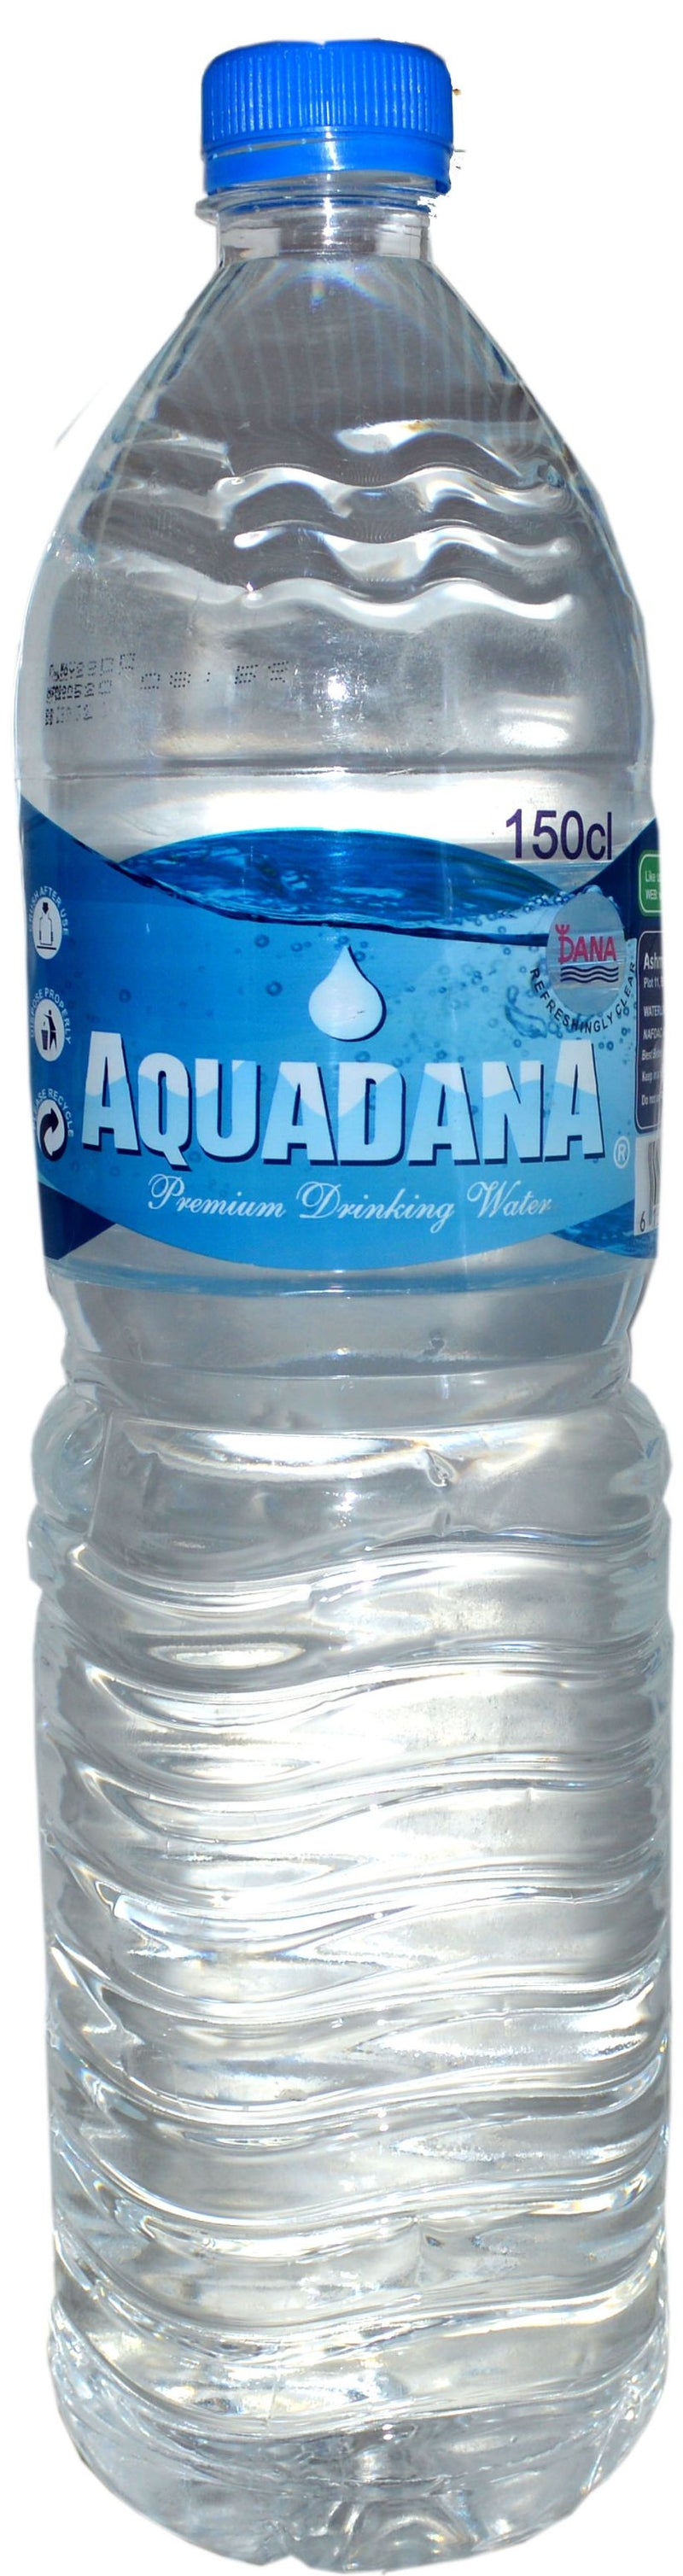 Aquadana Table Water